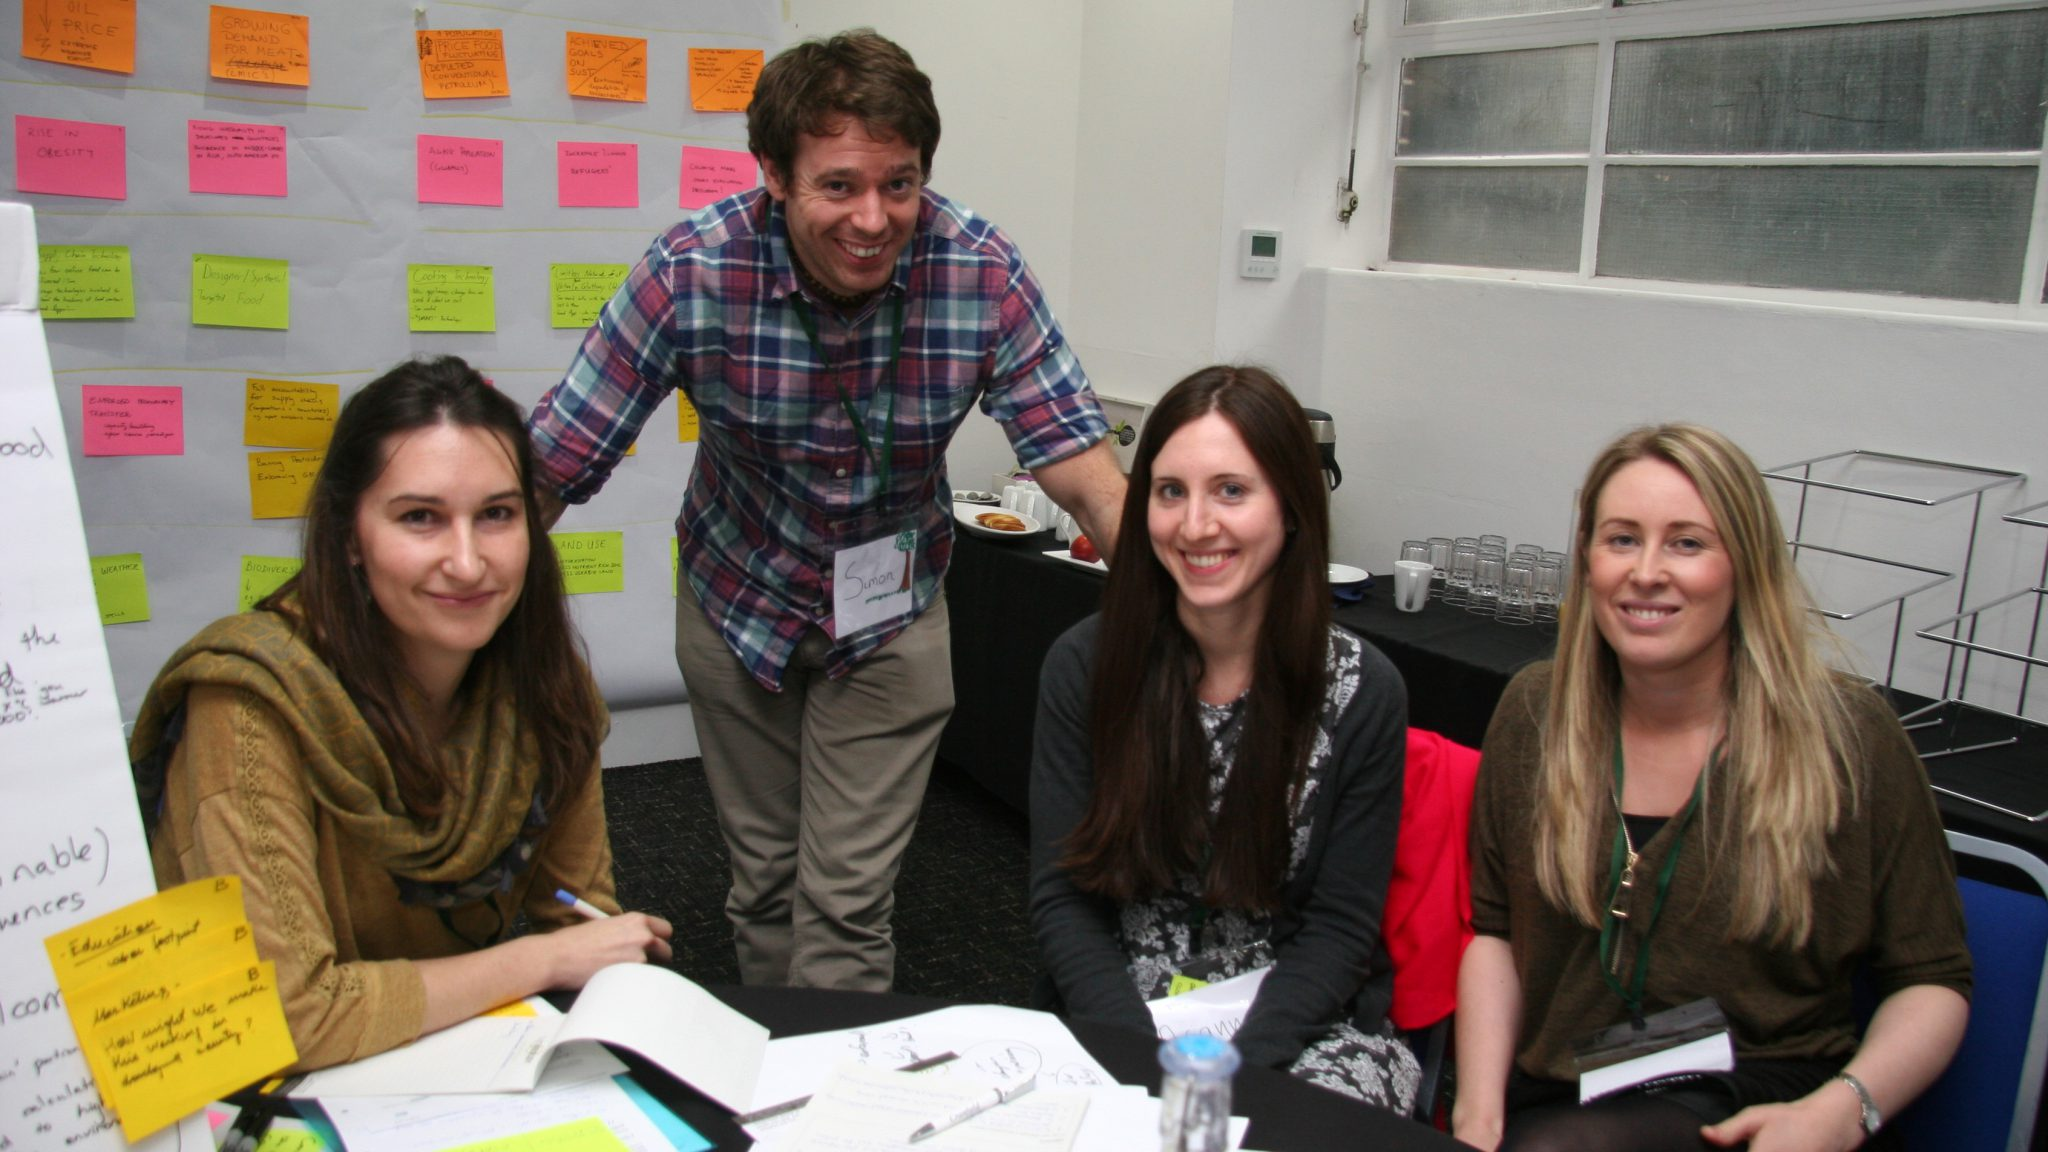 Blog post author Arianna Psichas with Policy Lab team